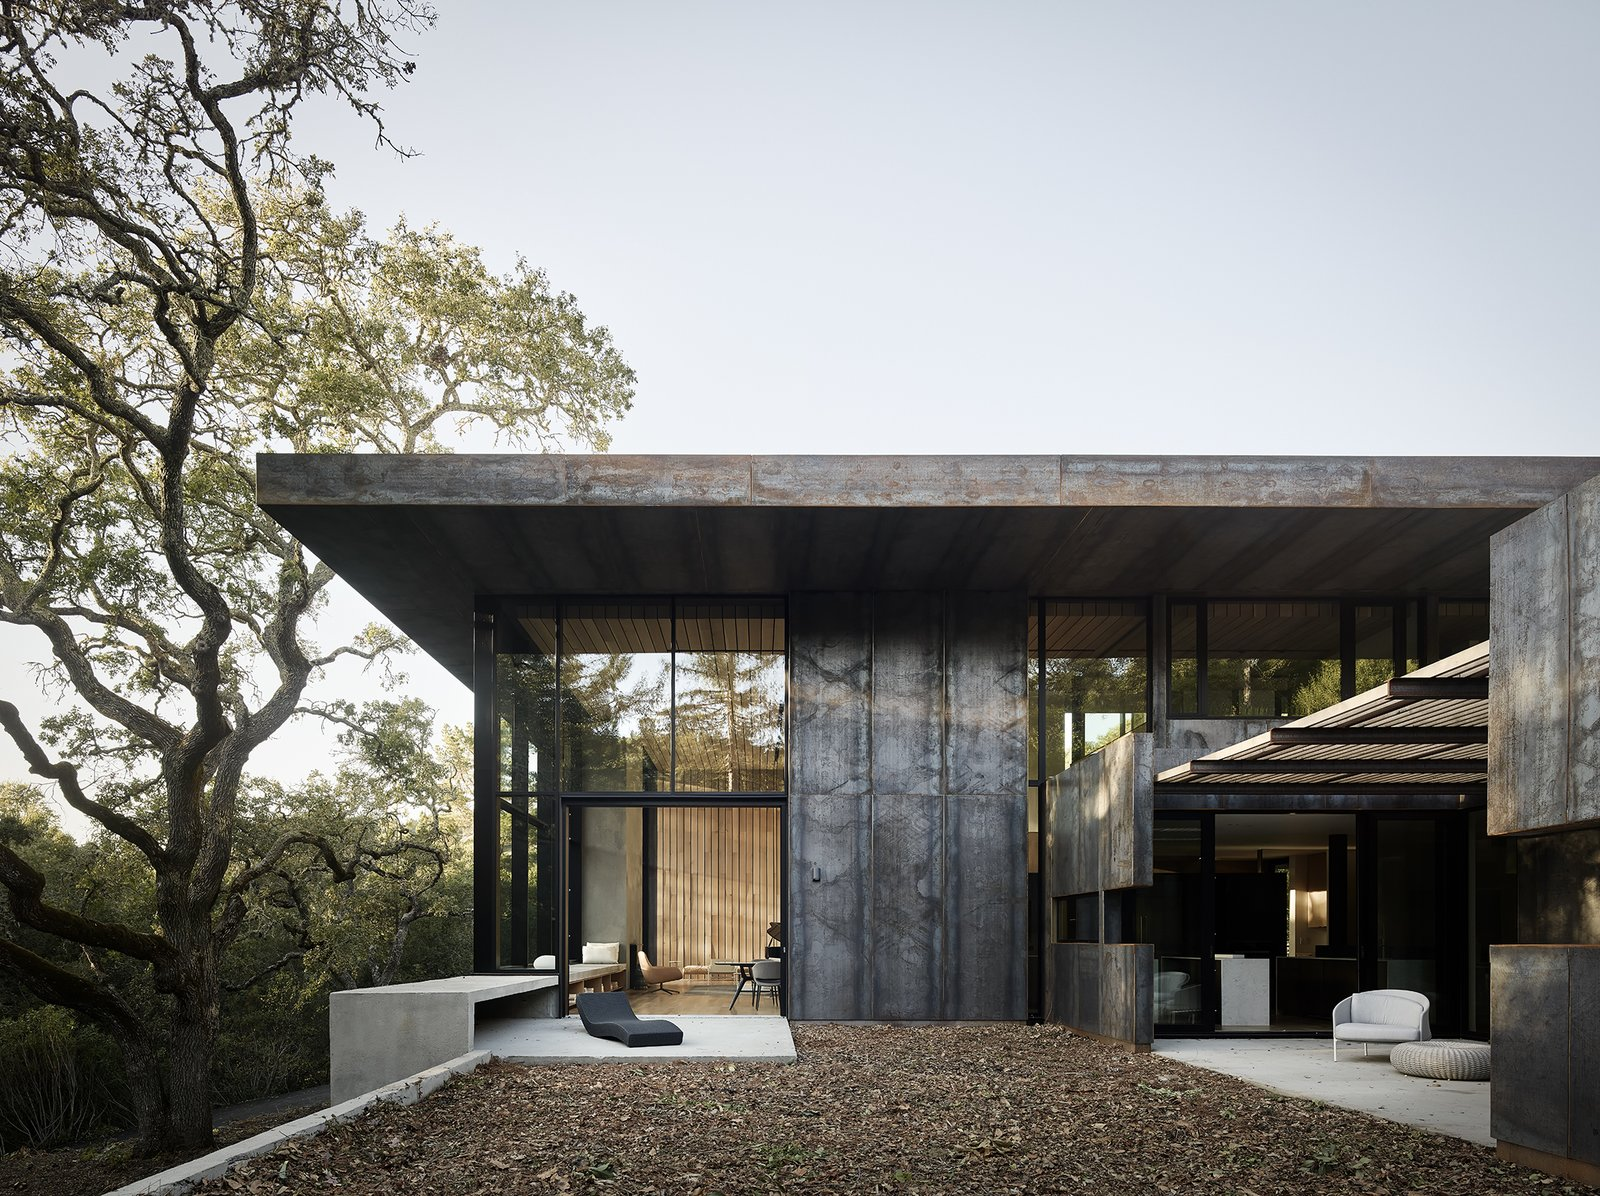 Located in Orinda, California, a three-bedroom house by architect Greg Faulkner took its first aesthetic cue from a large oak tree on the site. Cor-Ten steel panels clad the exterior, while white oak offers a material counterpoint on the interior. A 12-foot-wide sliding pocket wall opens the living/dining area to a terrace with a Wave Chaise longue by Paola Lenti. The landscape design is by Thuilot Associates. Tagged: Exterior, House, Metal Roof Material, Metal Siding Material, and Flat RoofLine.  Photo 2 of 14 in Nature Drove the Design of This Sculptural, Cor-Ten Steel House in Northern California